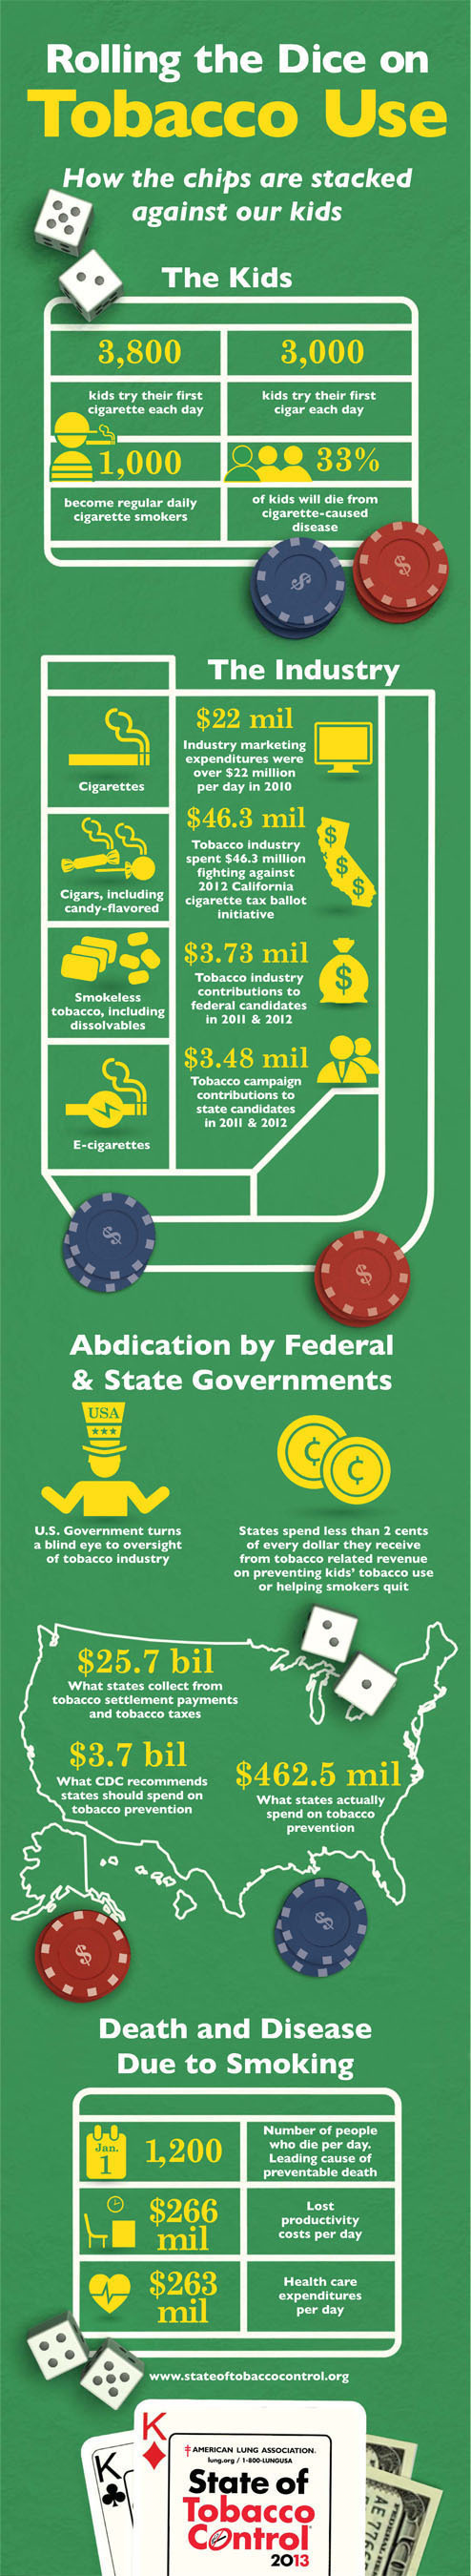 "American Lung Association ""State of Tobacco Control 2013"" Infographic: Rolling the Dice on Tobacco Use.  ..."